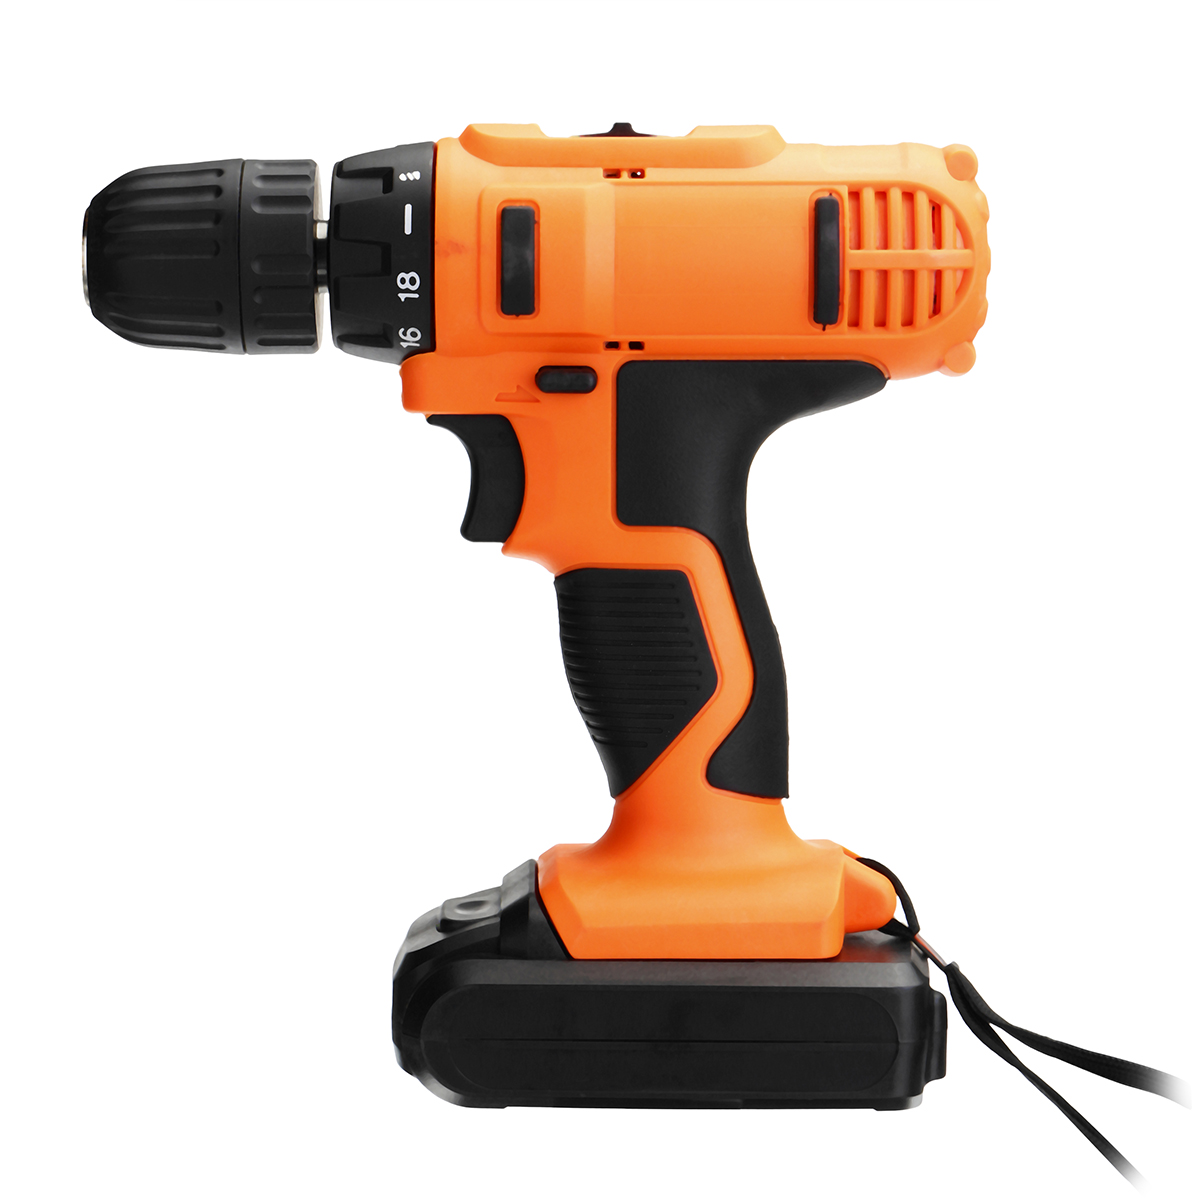 18V DC Lithium-Ion Battery Cordless Drill/Driver Power Tools Screwdriver Electric Drill with Battery Included